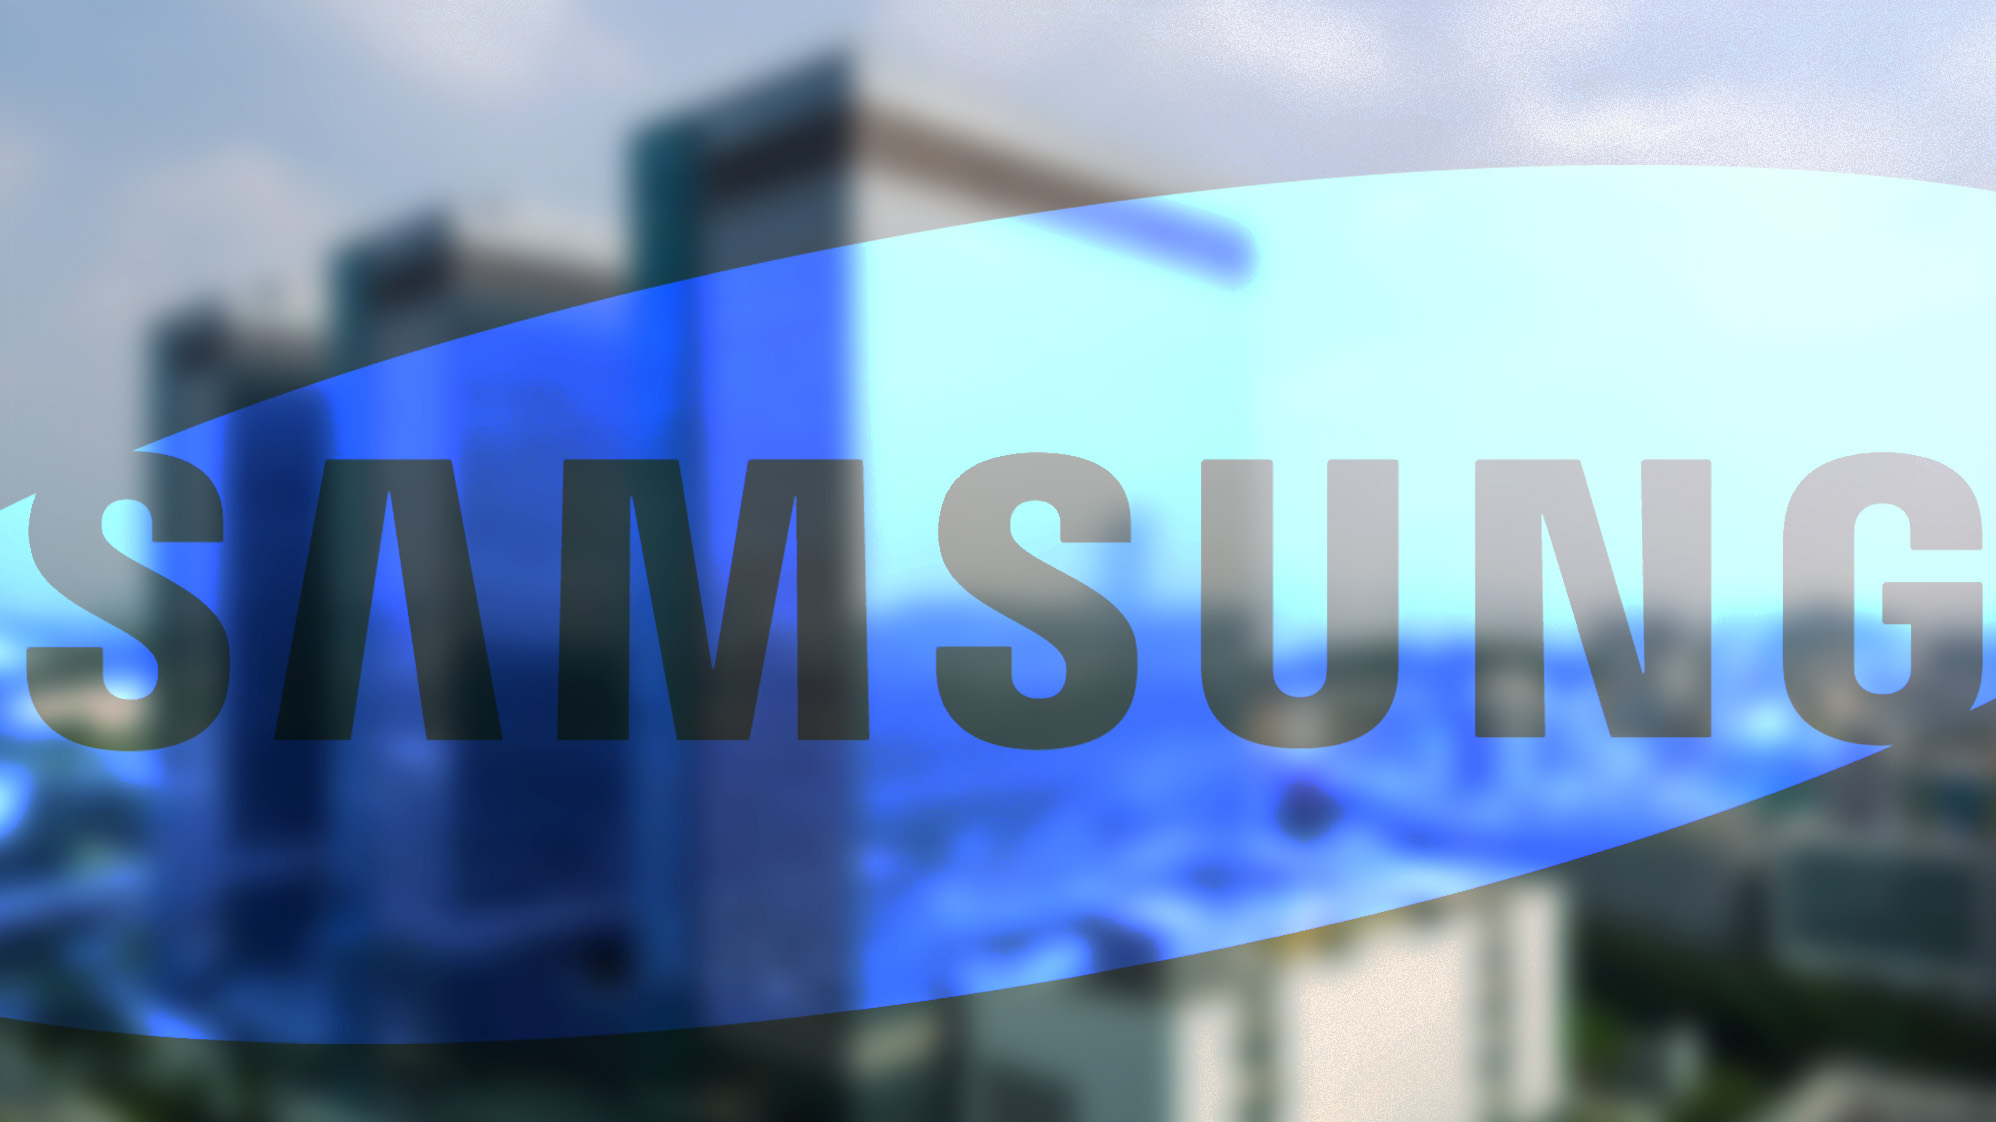 Fed up with patent trolls, Samsung goes on an offensive - SamMobile